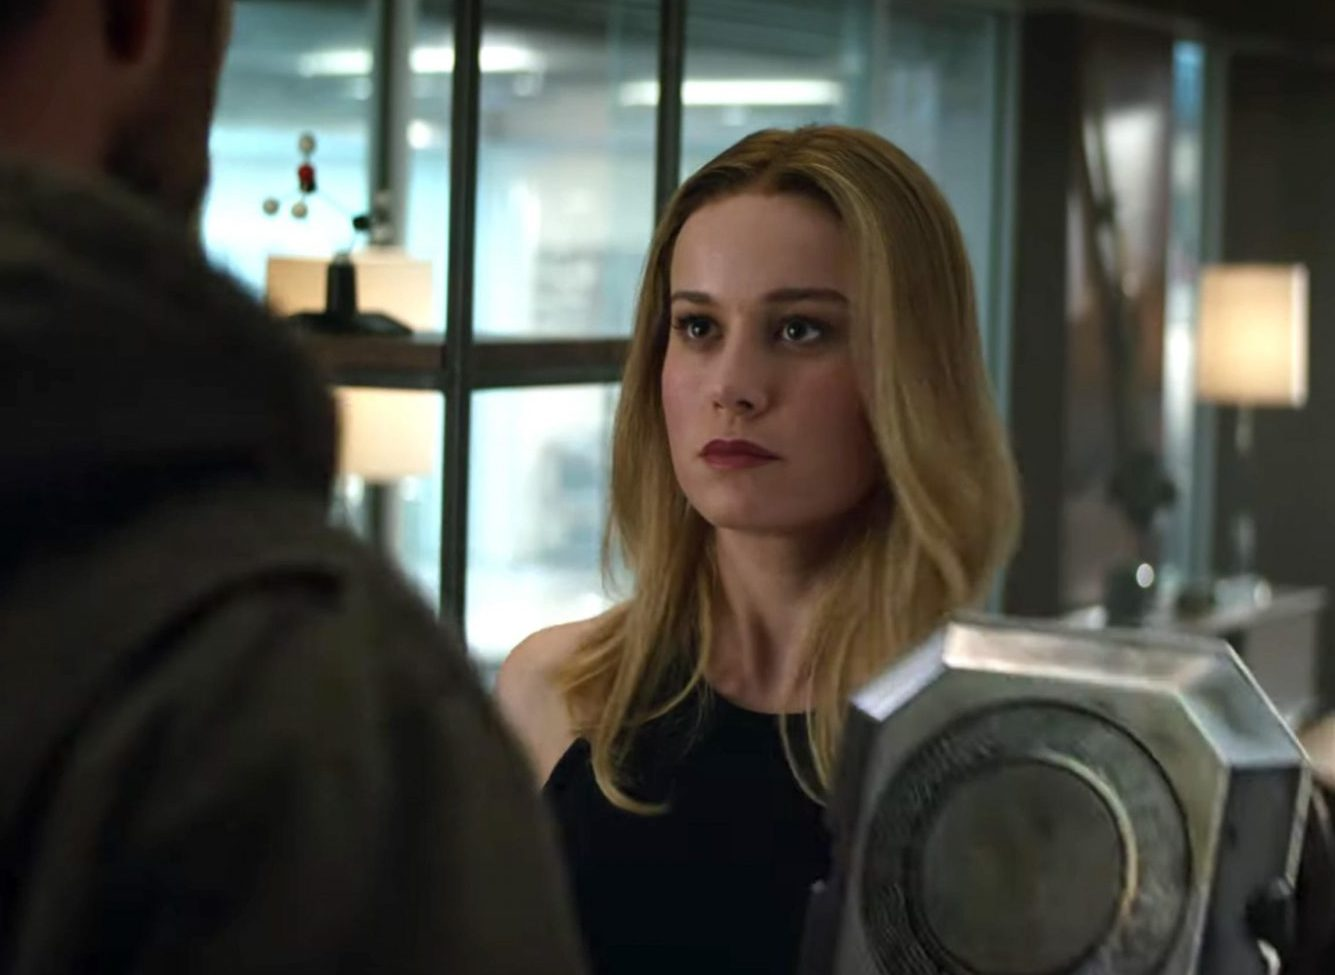 image 2 e1628062996521 25 Things You Didn't Know About Avengers: Endgame